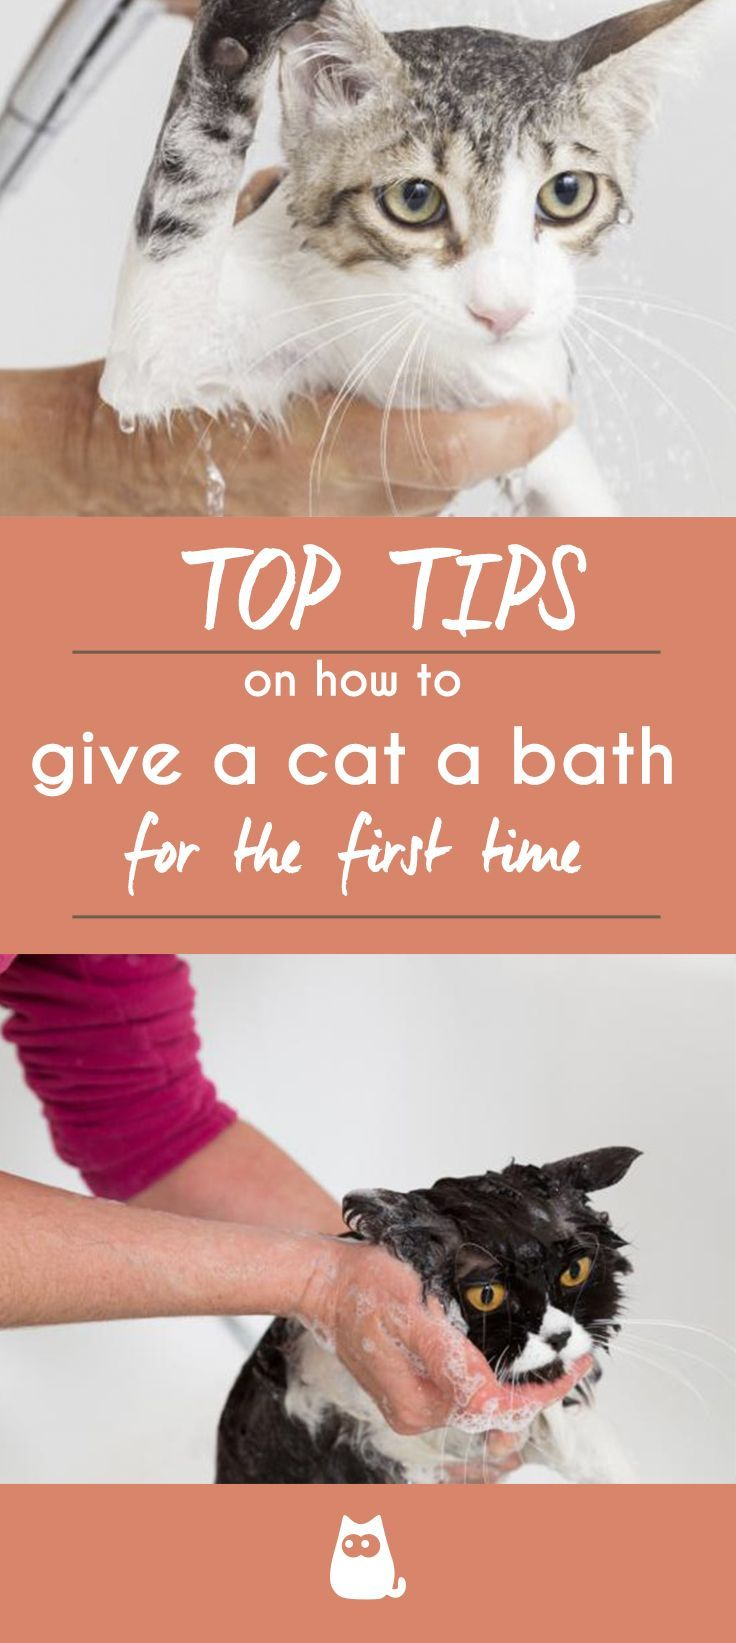 Are You Wondering How To Give Your Cat A Bath For The First Time Giving A Cat It S First Bath Can Be Stressful For The Cat First Time Cat Owner Cats